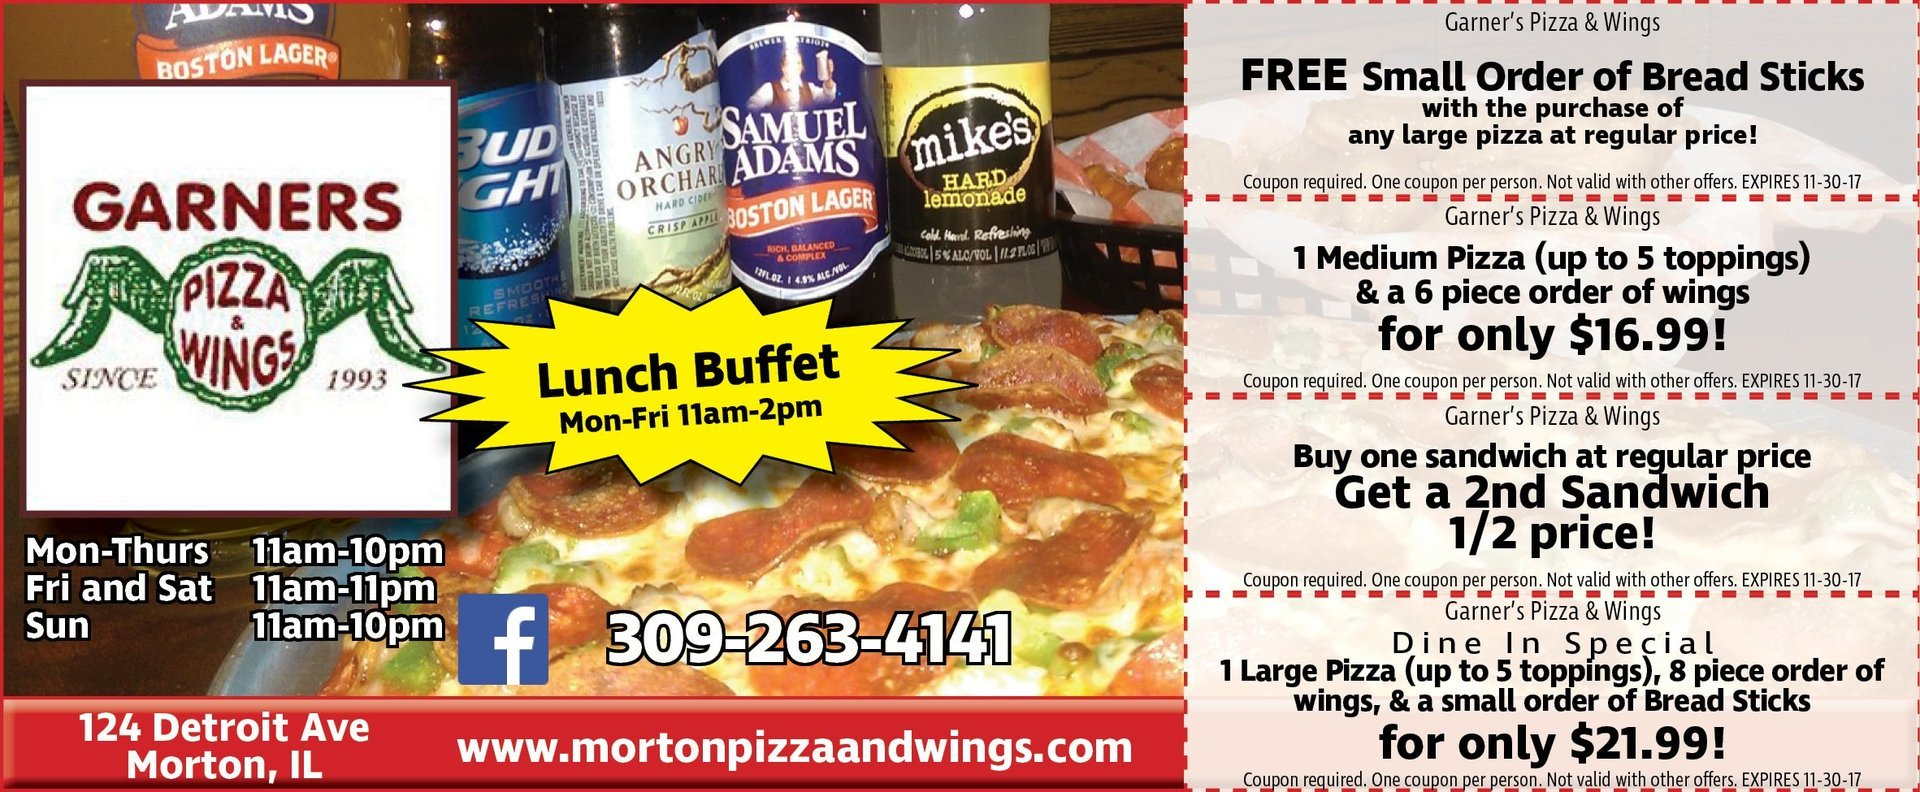 Garners Pizza and Wings pizza, wings, sandwich coupons Morton, IL